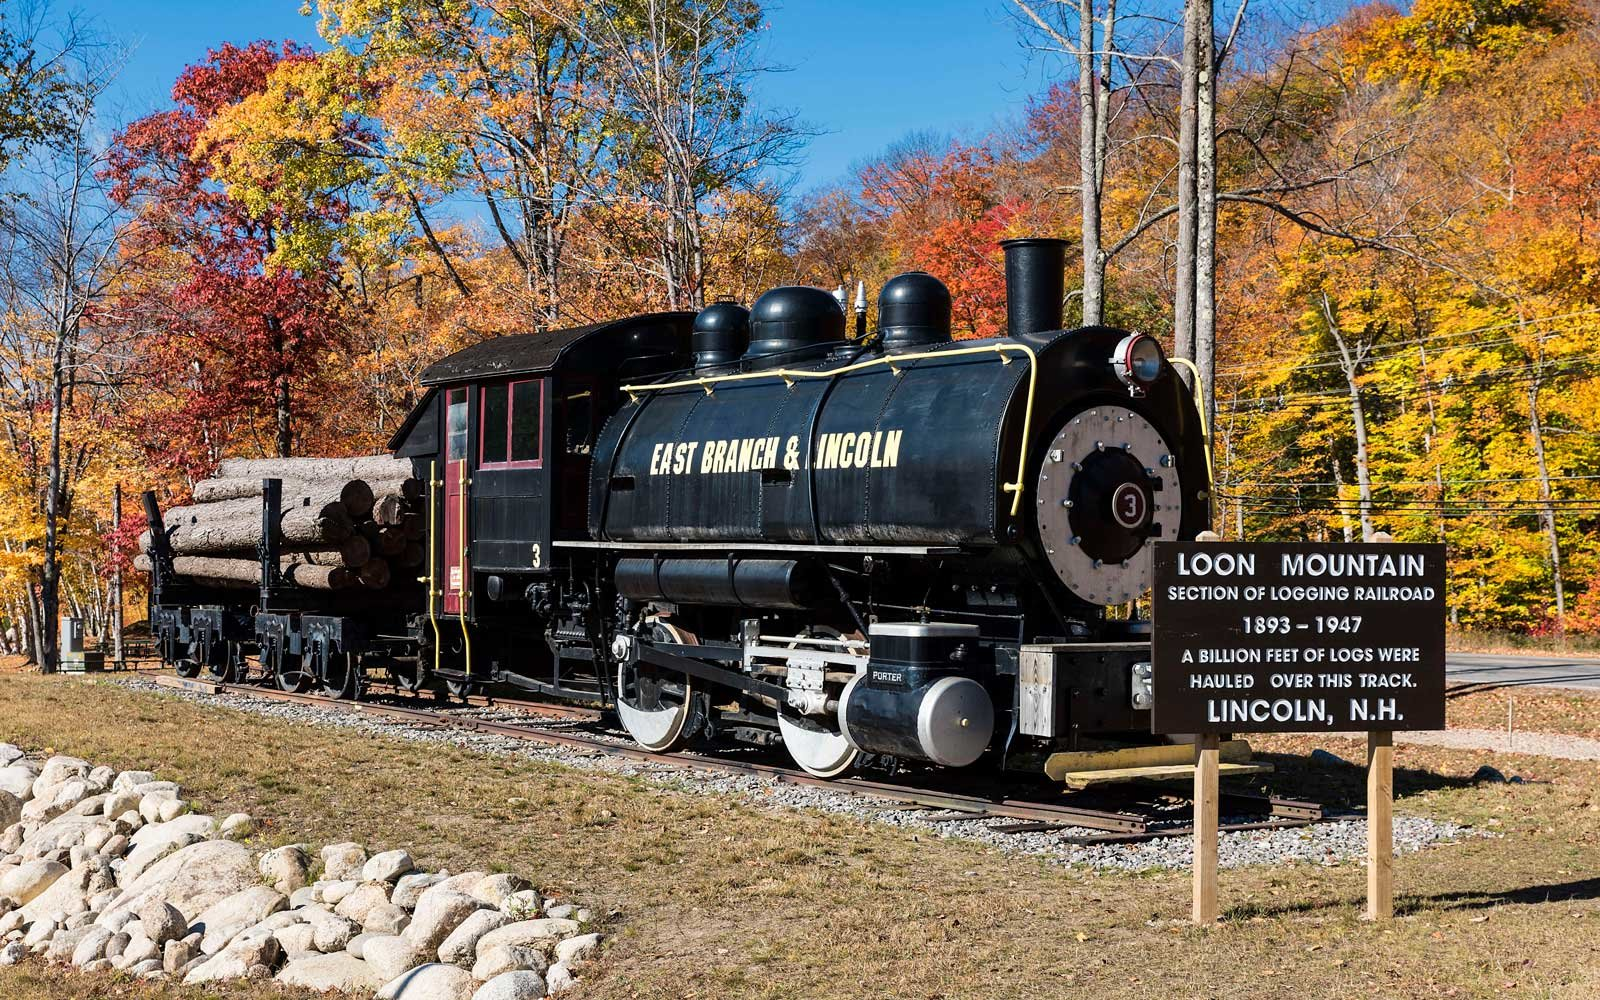 Historic logging train landmark at Loon Mountain, Lincoln, New Hampshire